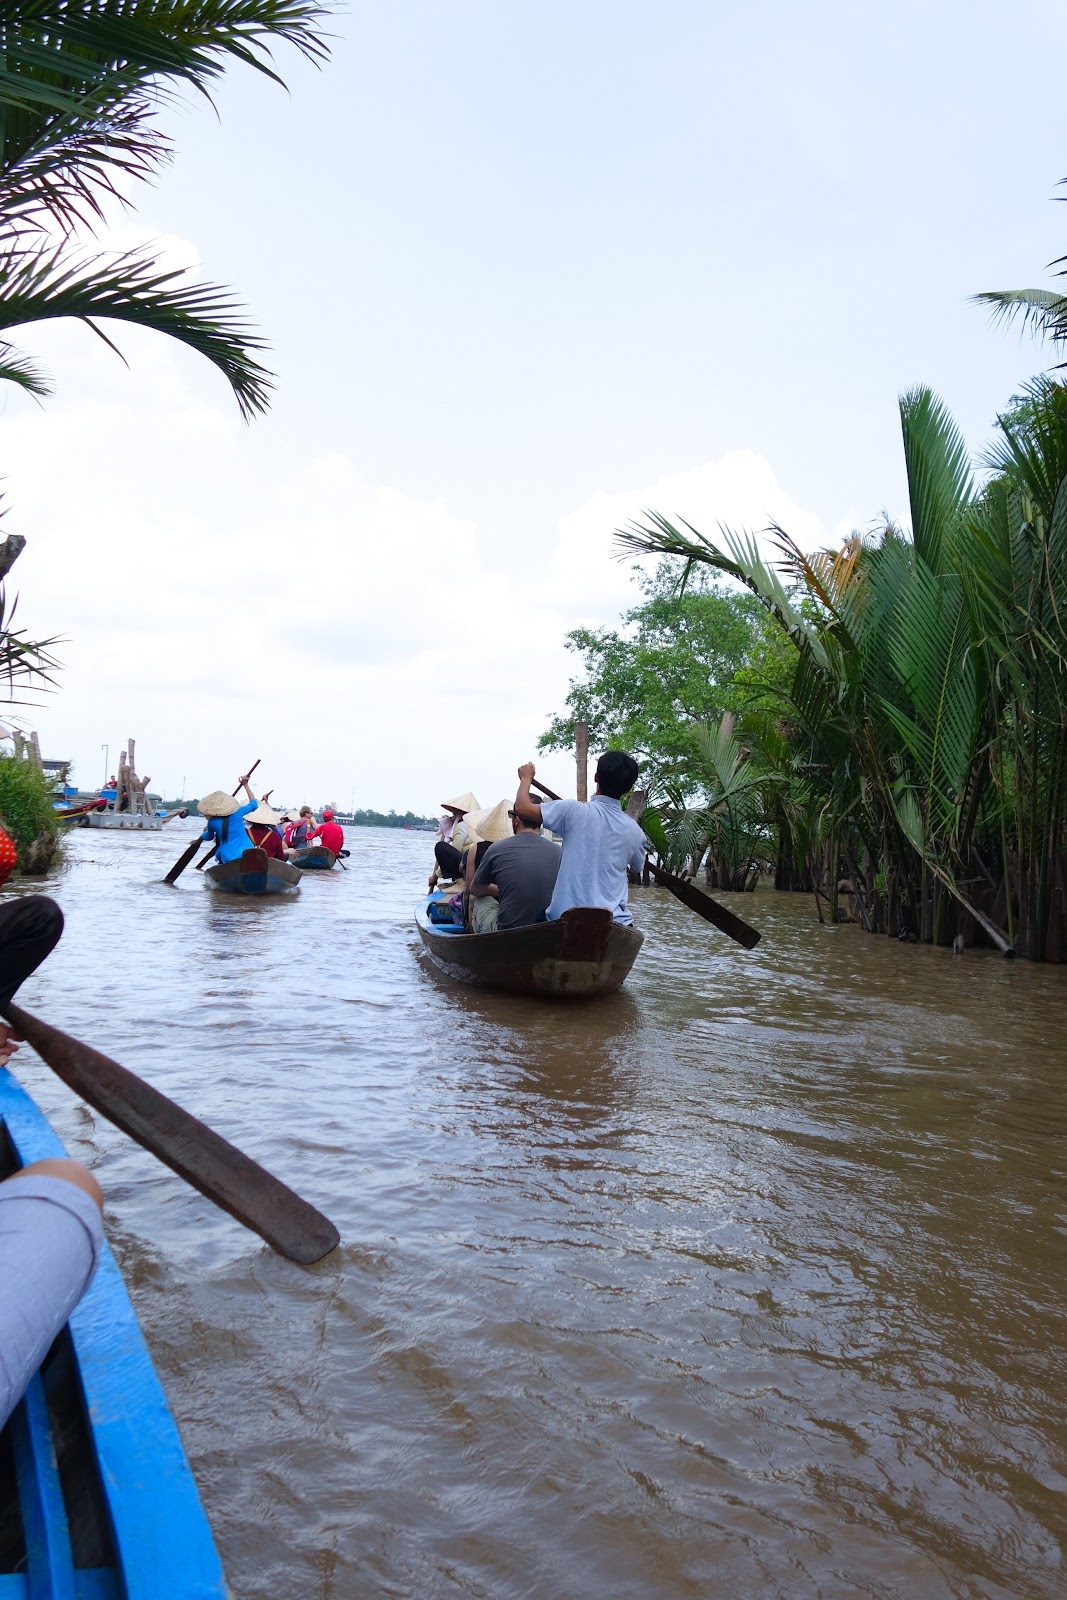 Sampan cruise on the tributary of the Mekong River, Vietnam 2015